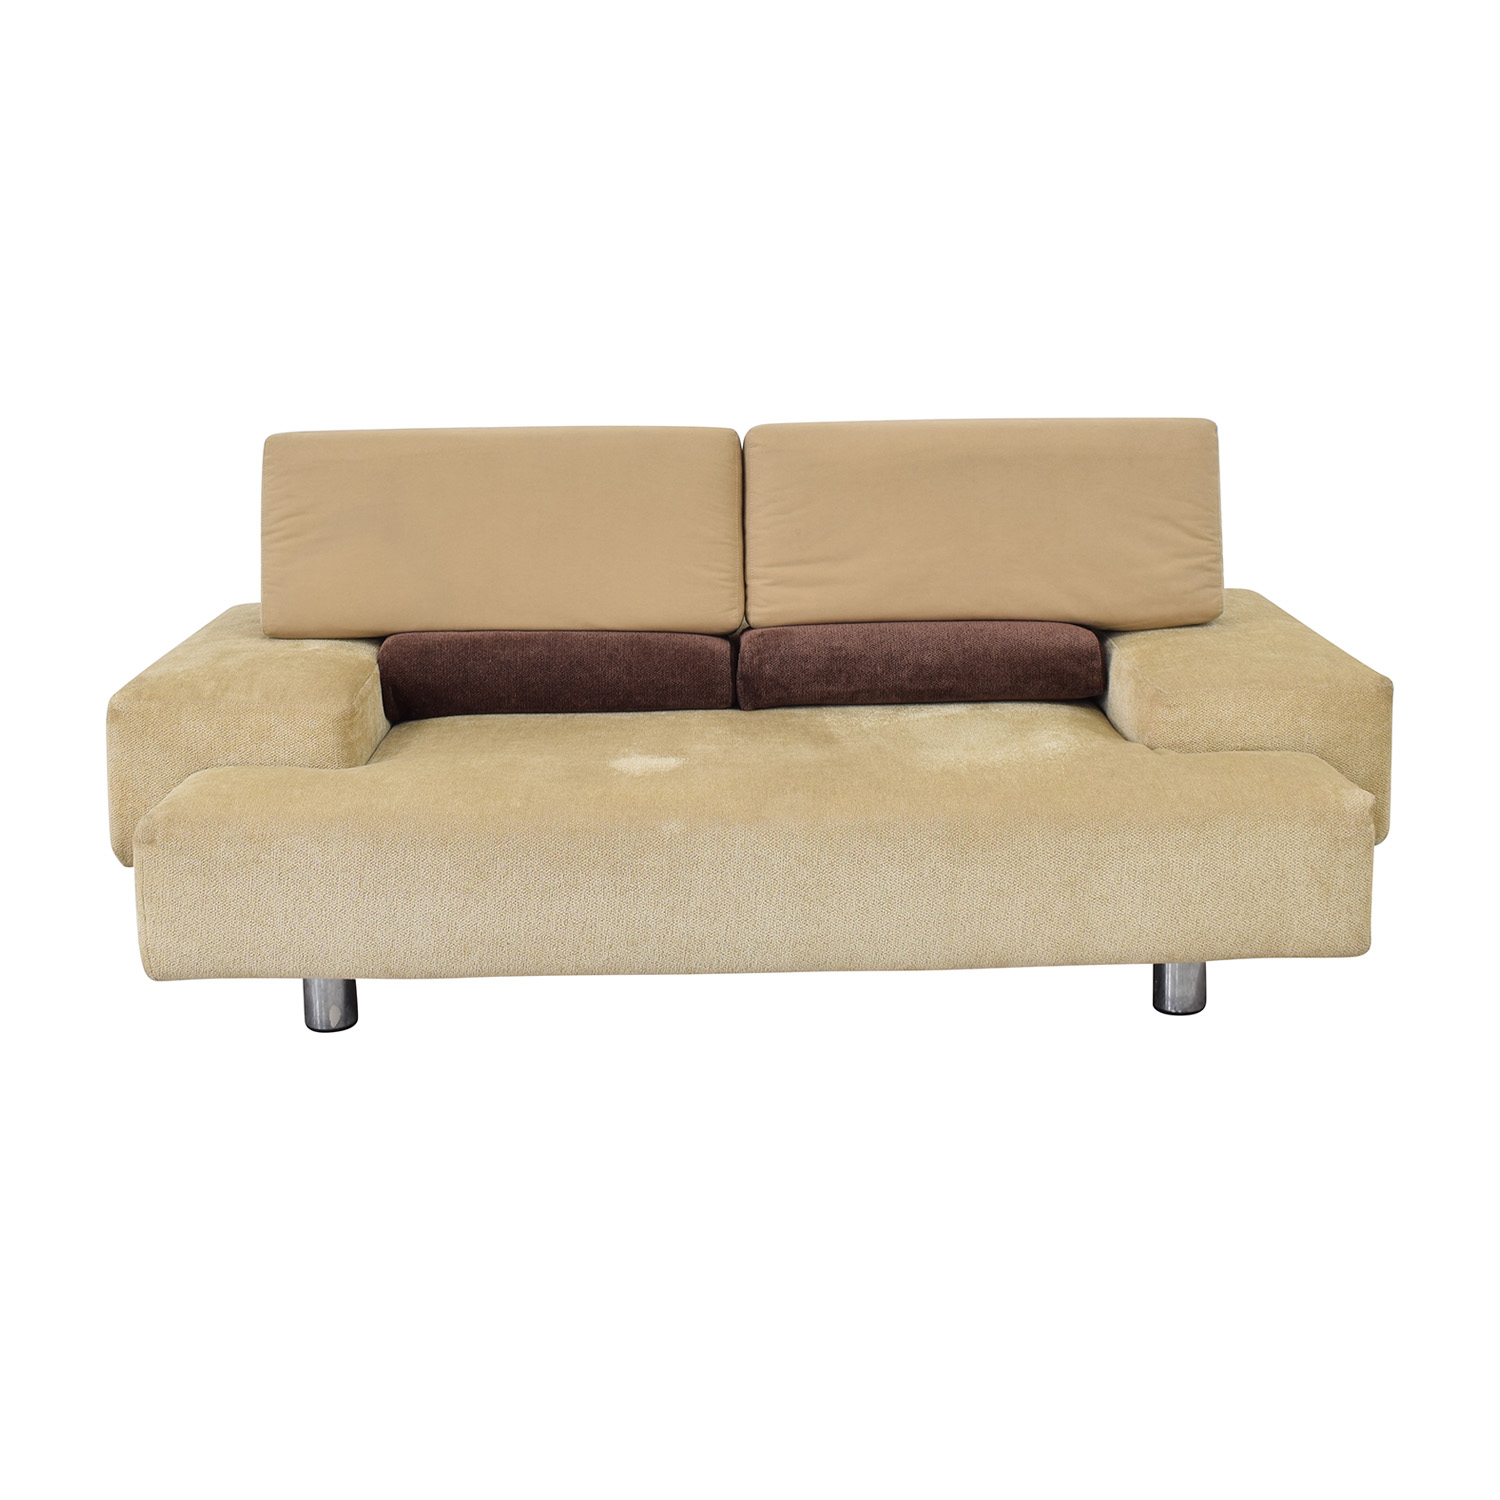 73% OFF - Aeon Furniture Aeon Furniture Convertible Sofa / Sofas